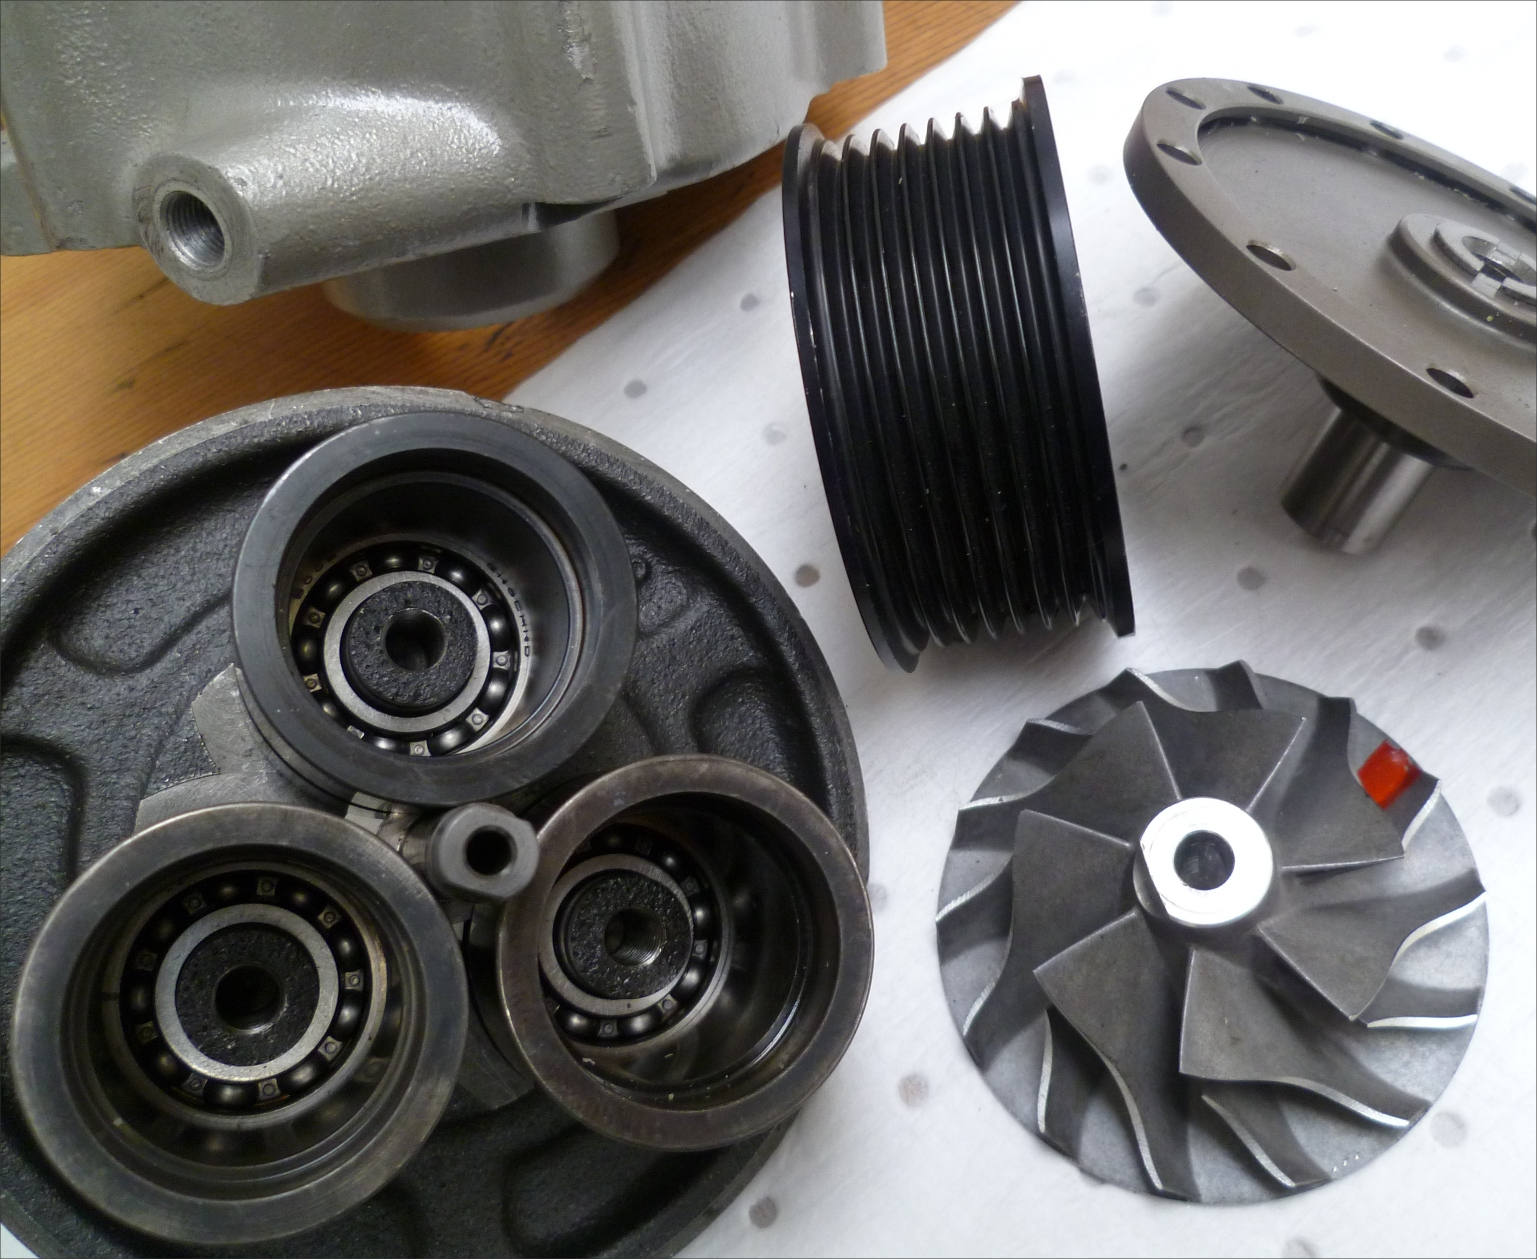 Index also Silicone Elbow P 31 likewise 291112877749 besides Indpenedent Lab Tests Show As Much As 40 Performance Gap Between Genuine Honeywell Aftermarket Turbos And Copies also Turbo Technics Supercharger Refurbishment. on turbocharger replacement parts